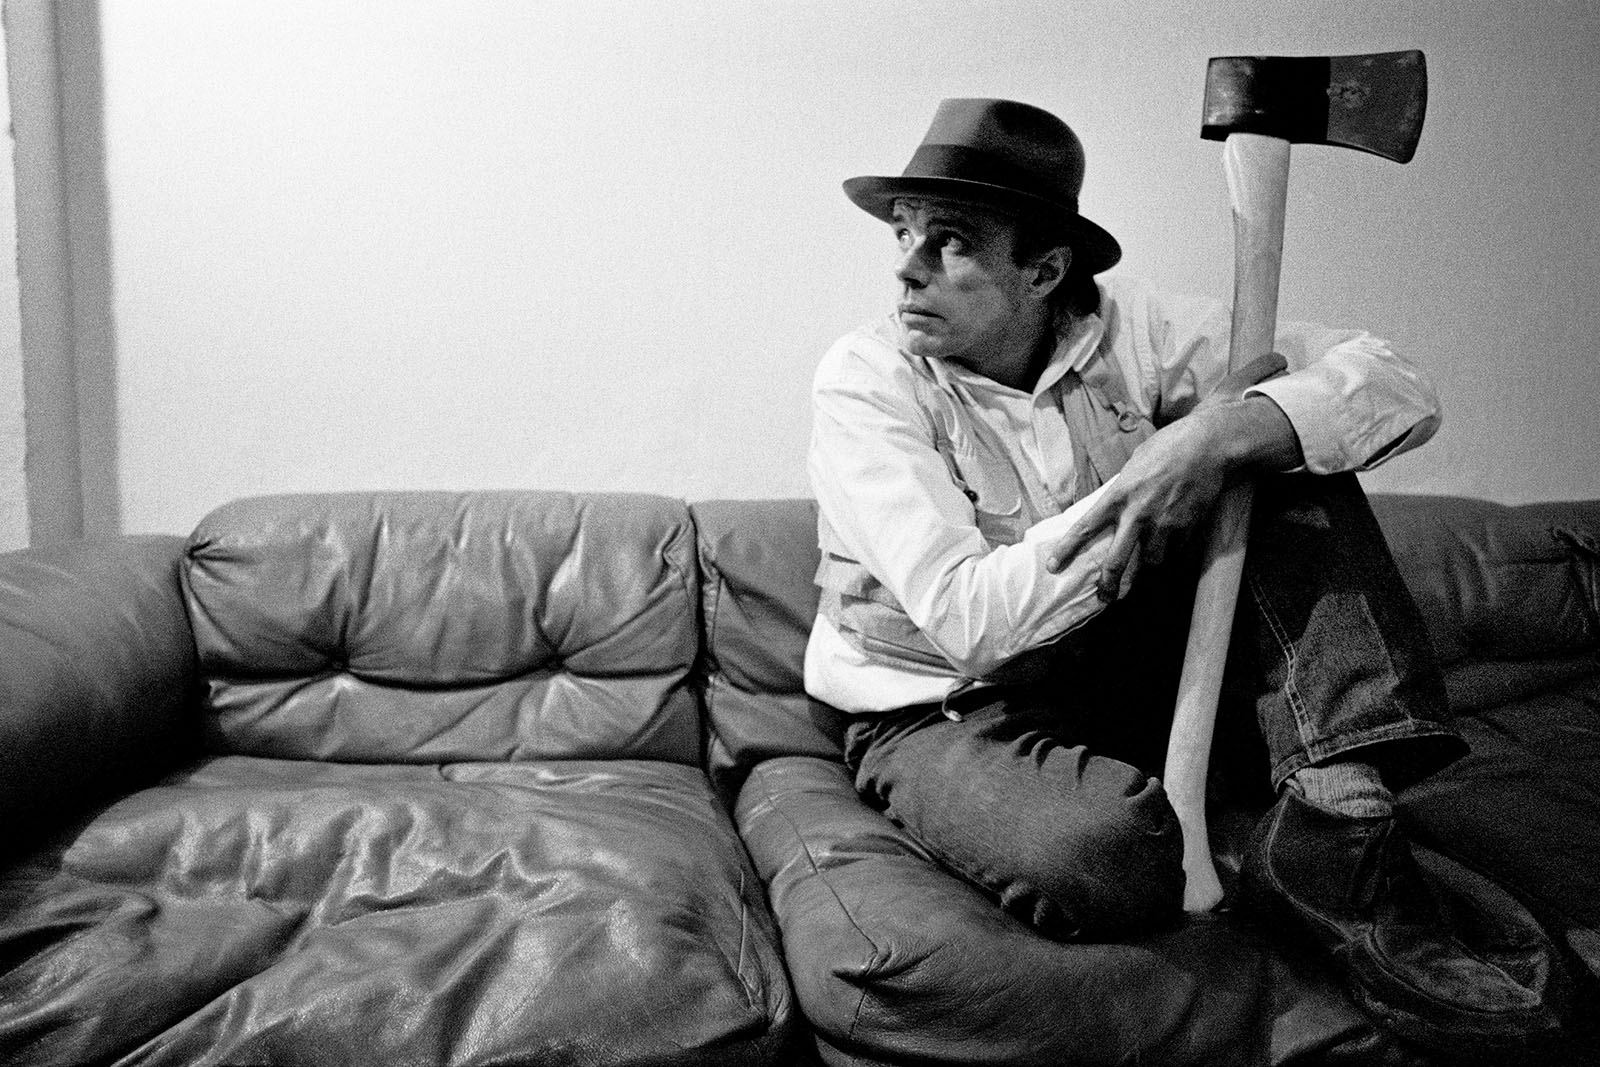 Portrait of Joseph Beuys, by Robert Lebeck, c. 1978